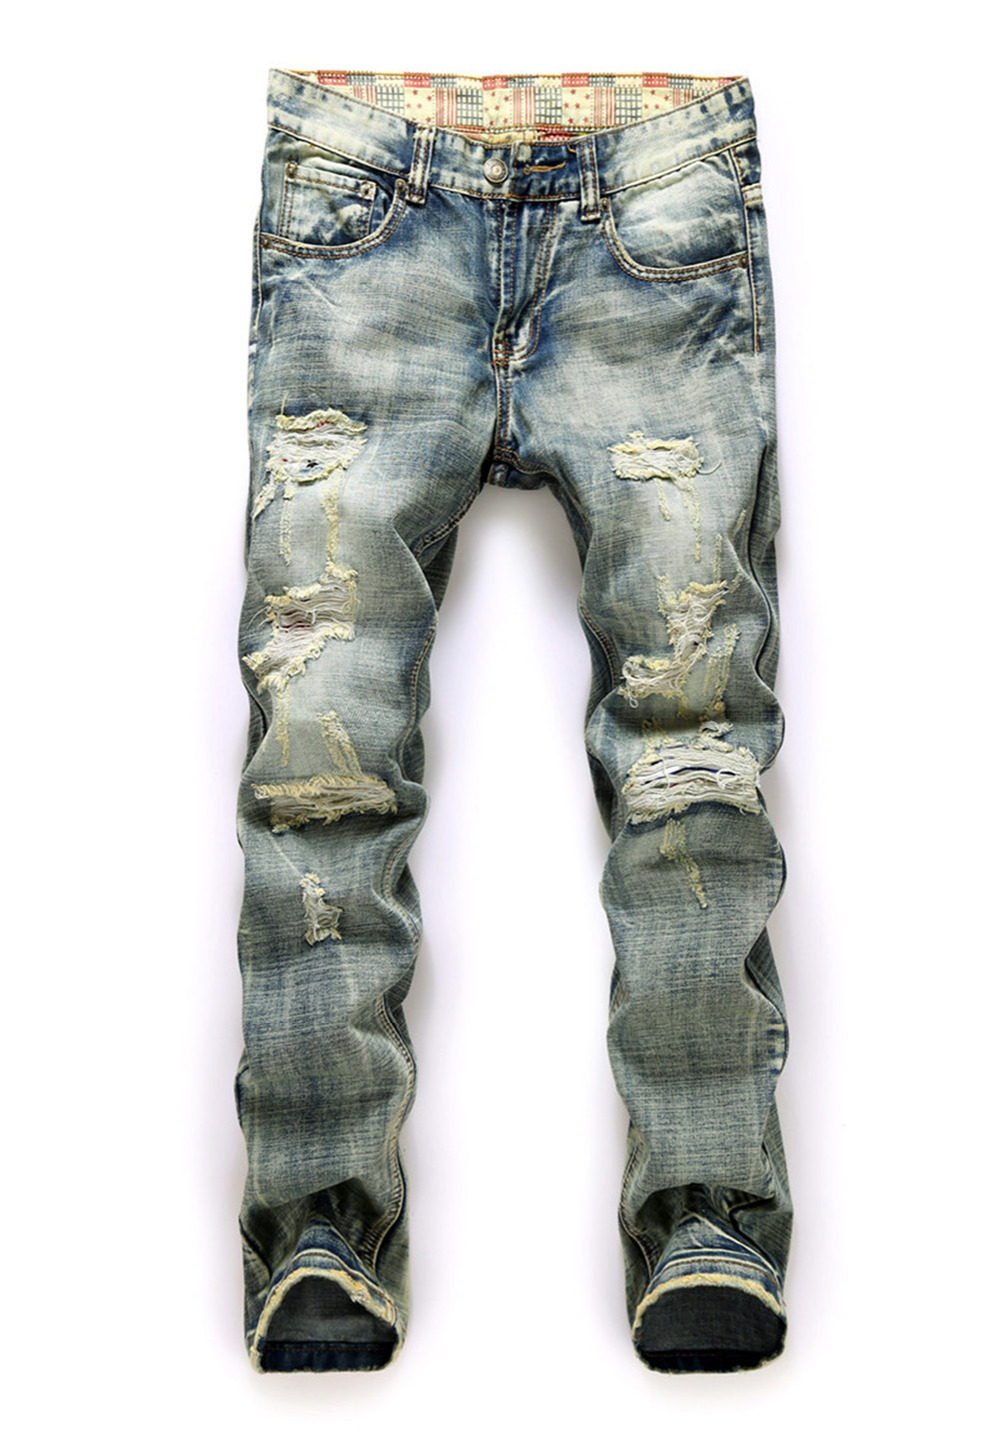 ФОТО Cocominibox Men's Retro Ripped Worn Washed Jeans Straight Denim Pants Casual Trousers